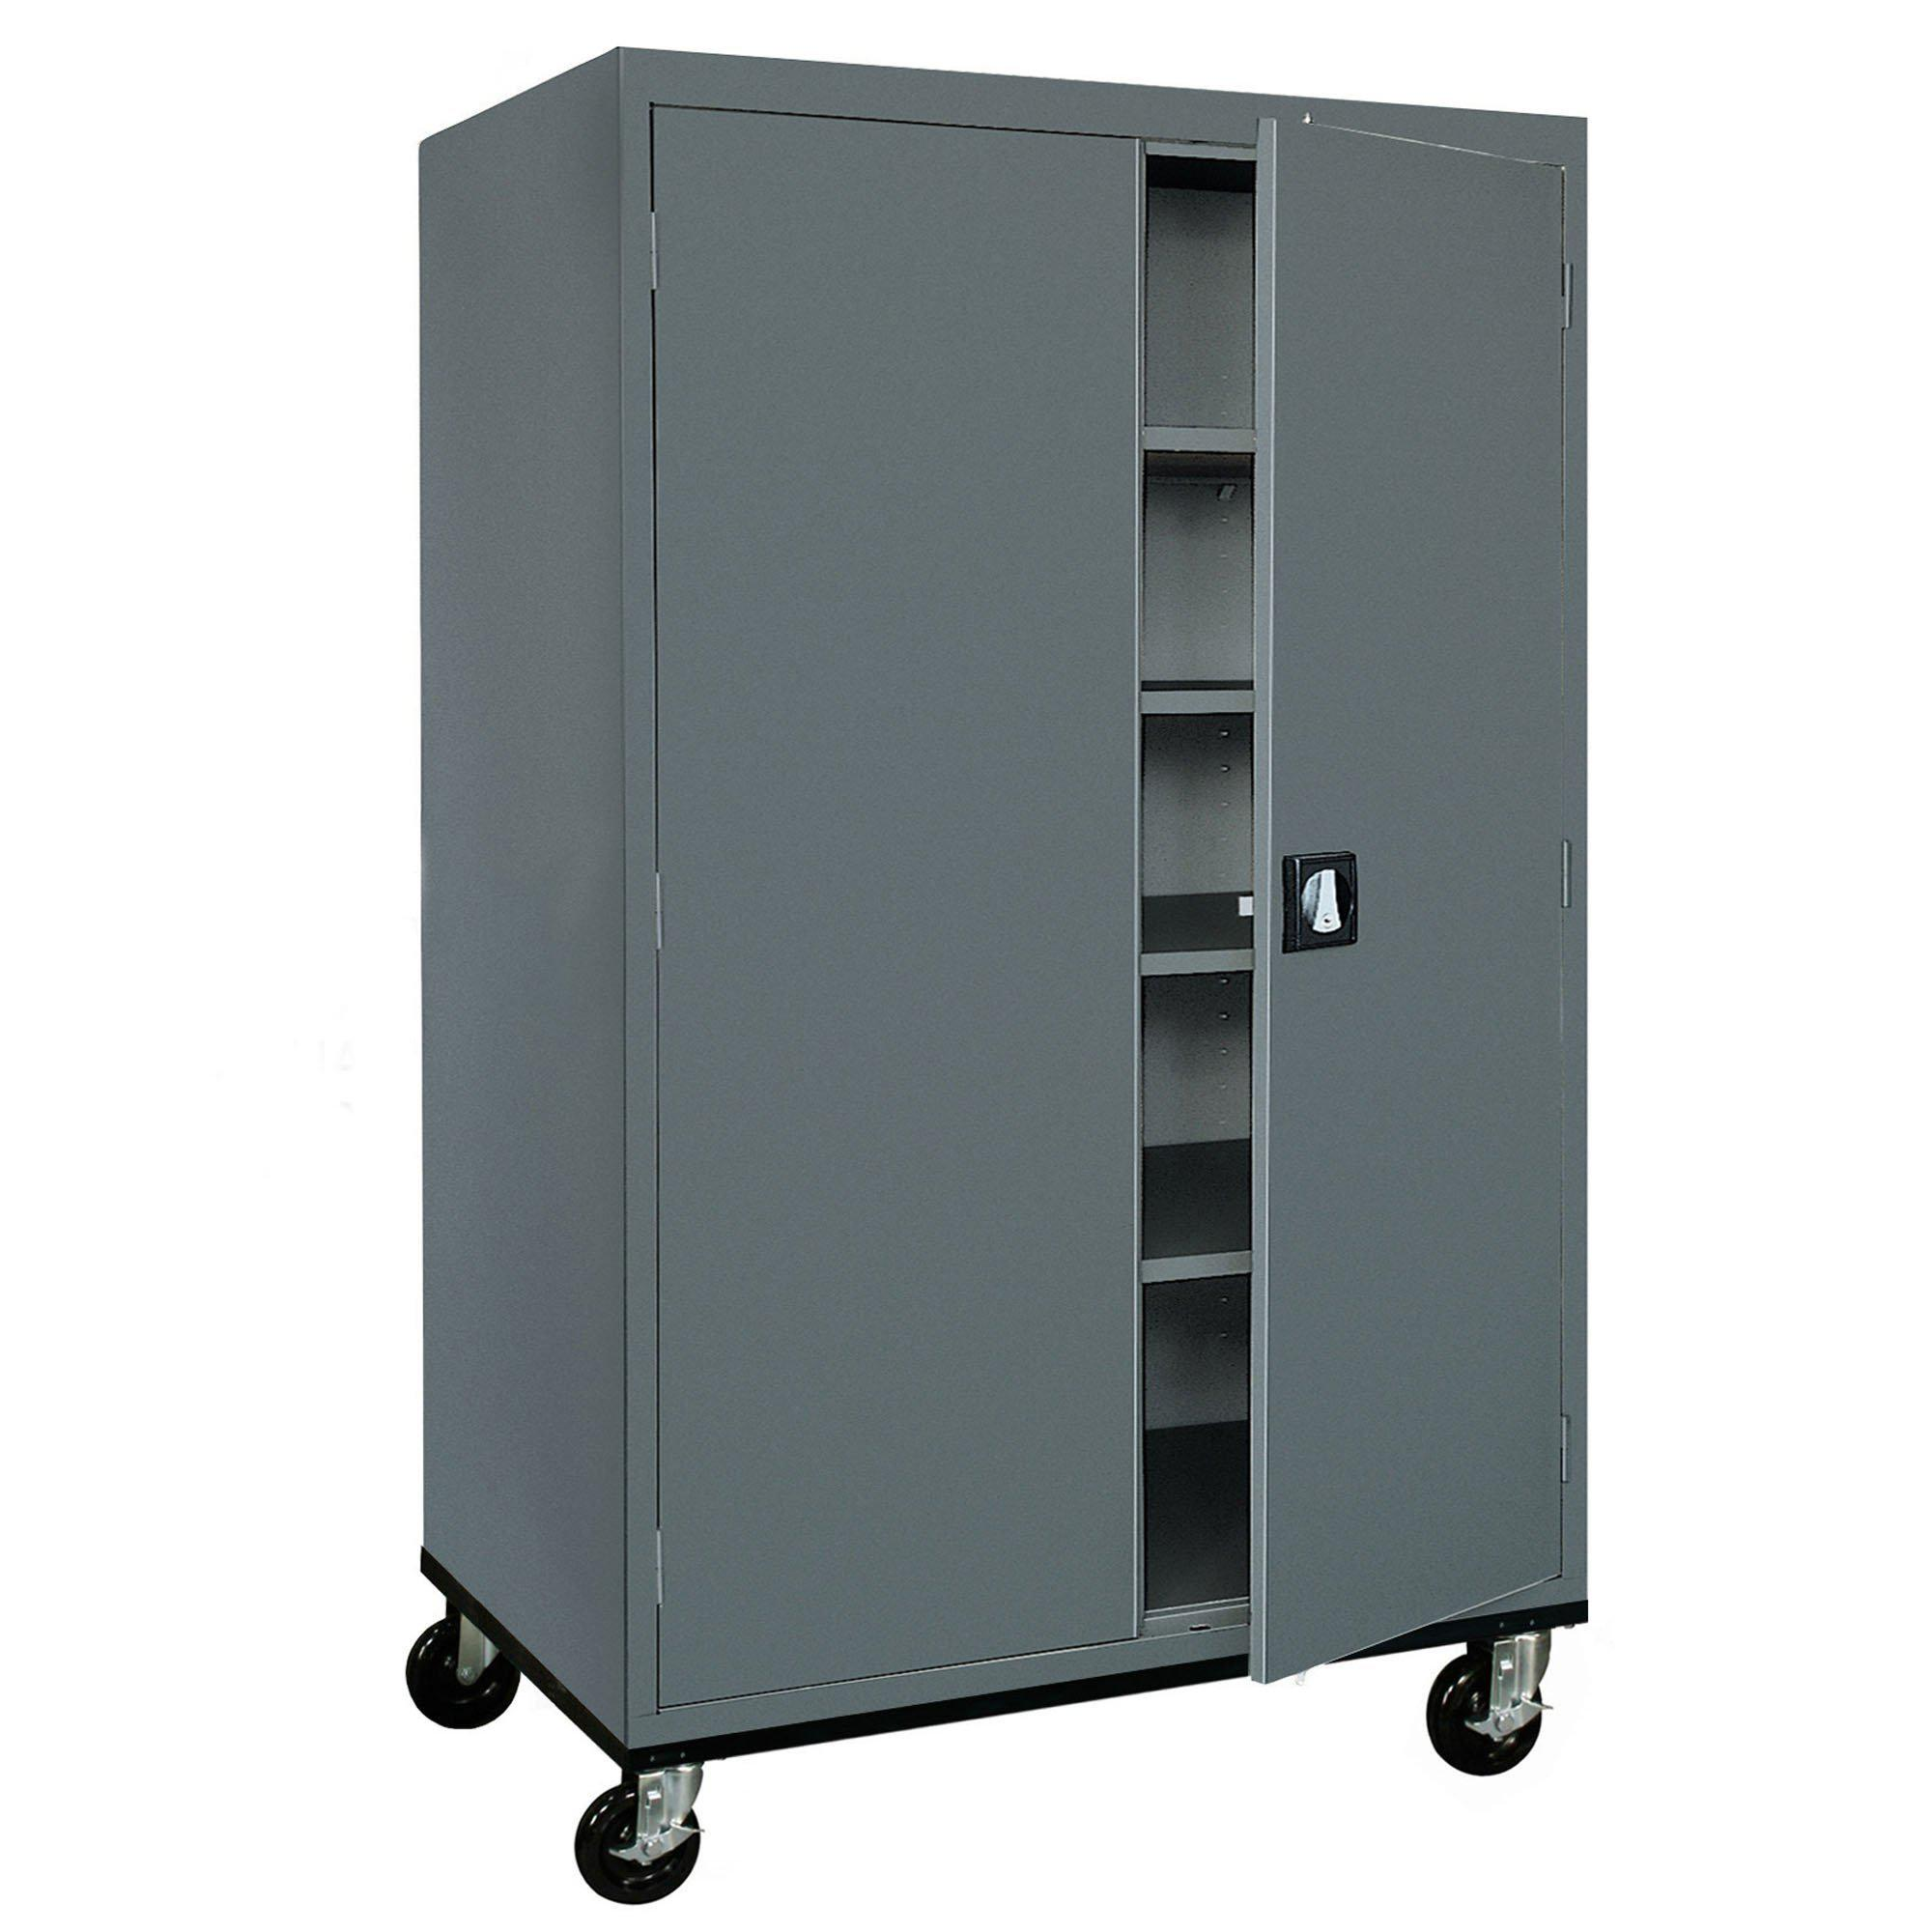 Transport Series Storage Cabinet, 46 x 24 x 72, Charcoal